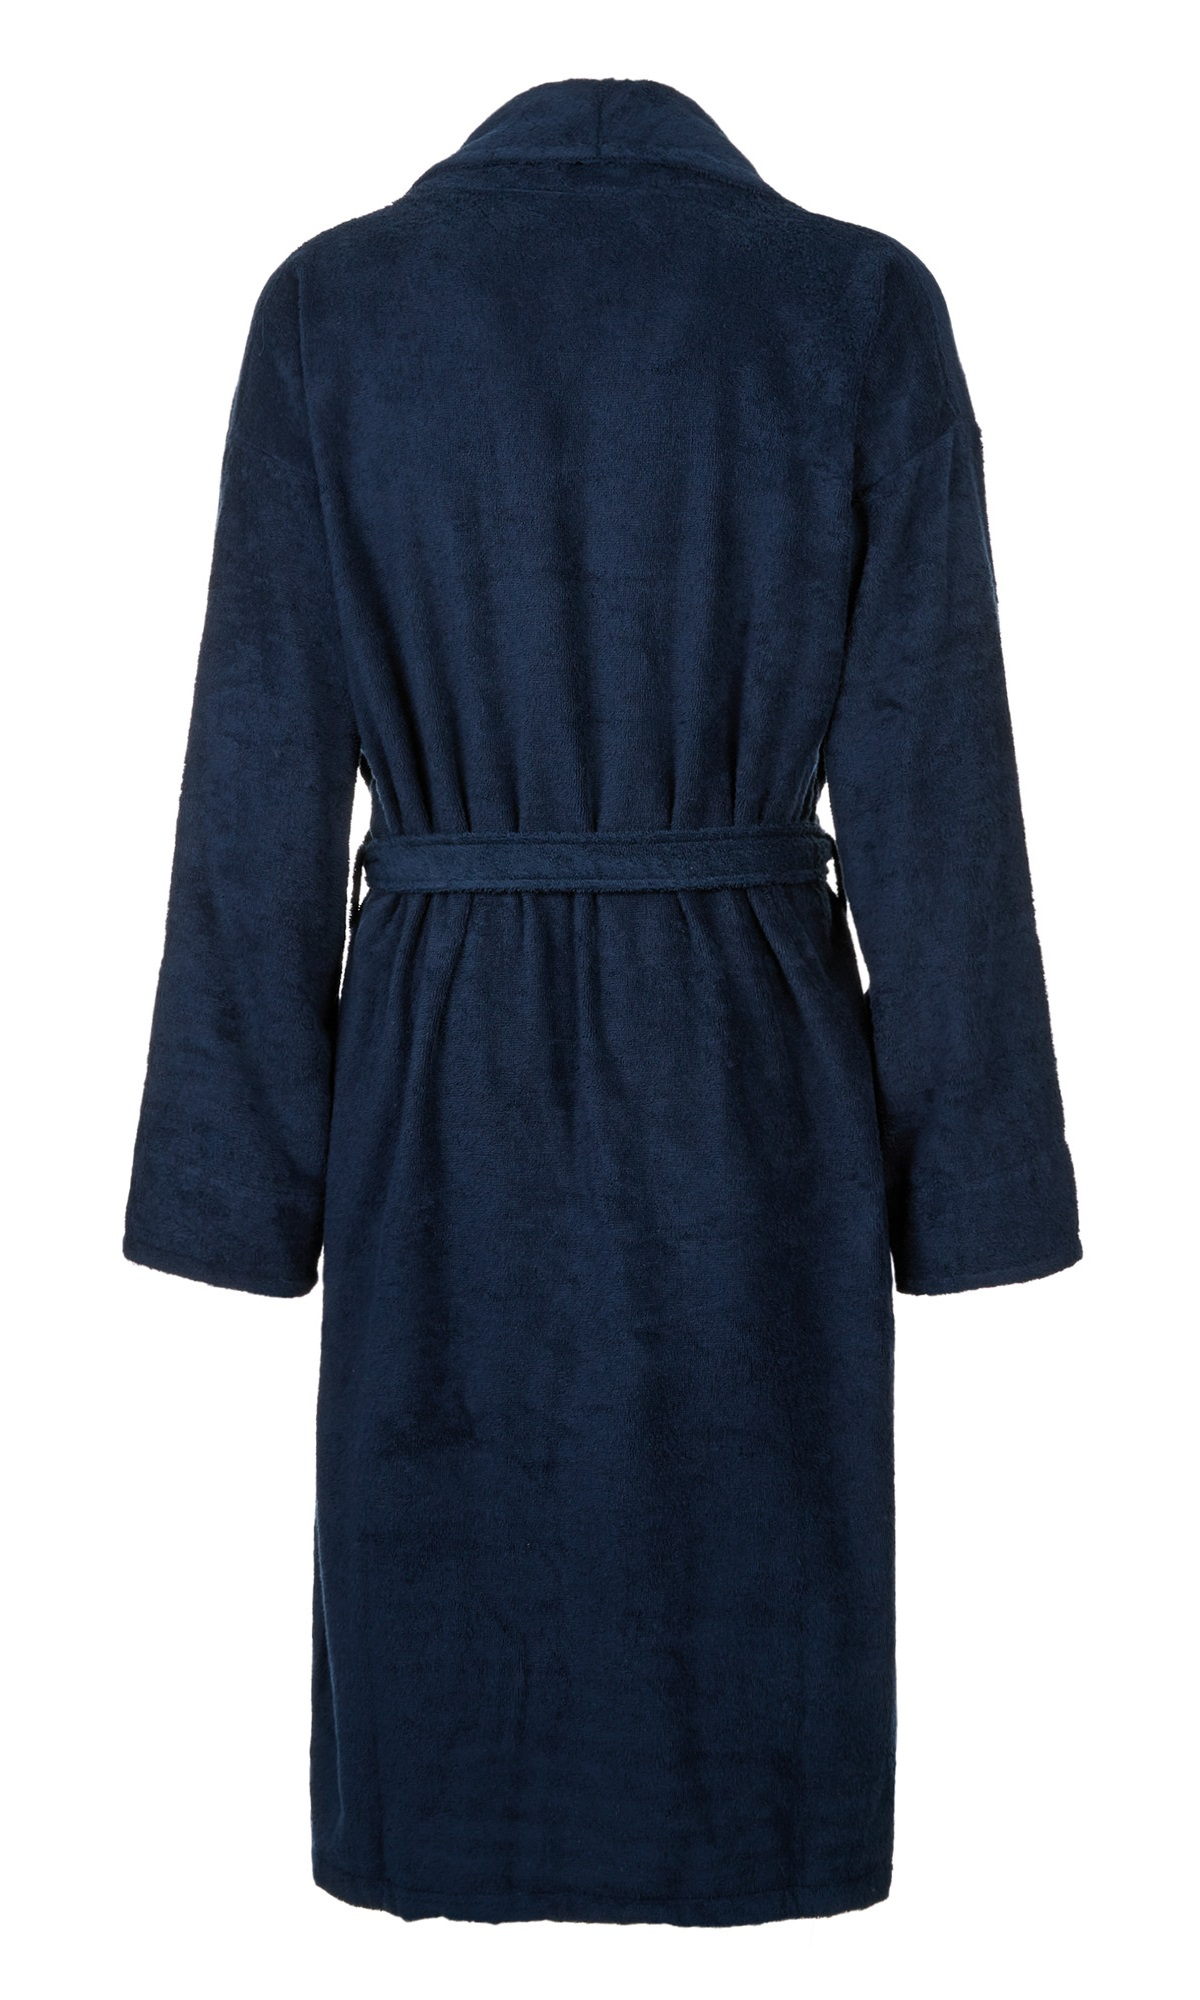 Details about Morley Wolsey Mens Slipstream Cotton Towelling Bath Robe  Dressing Gown US07M f633f264e